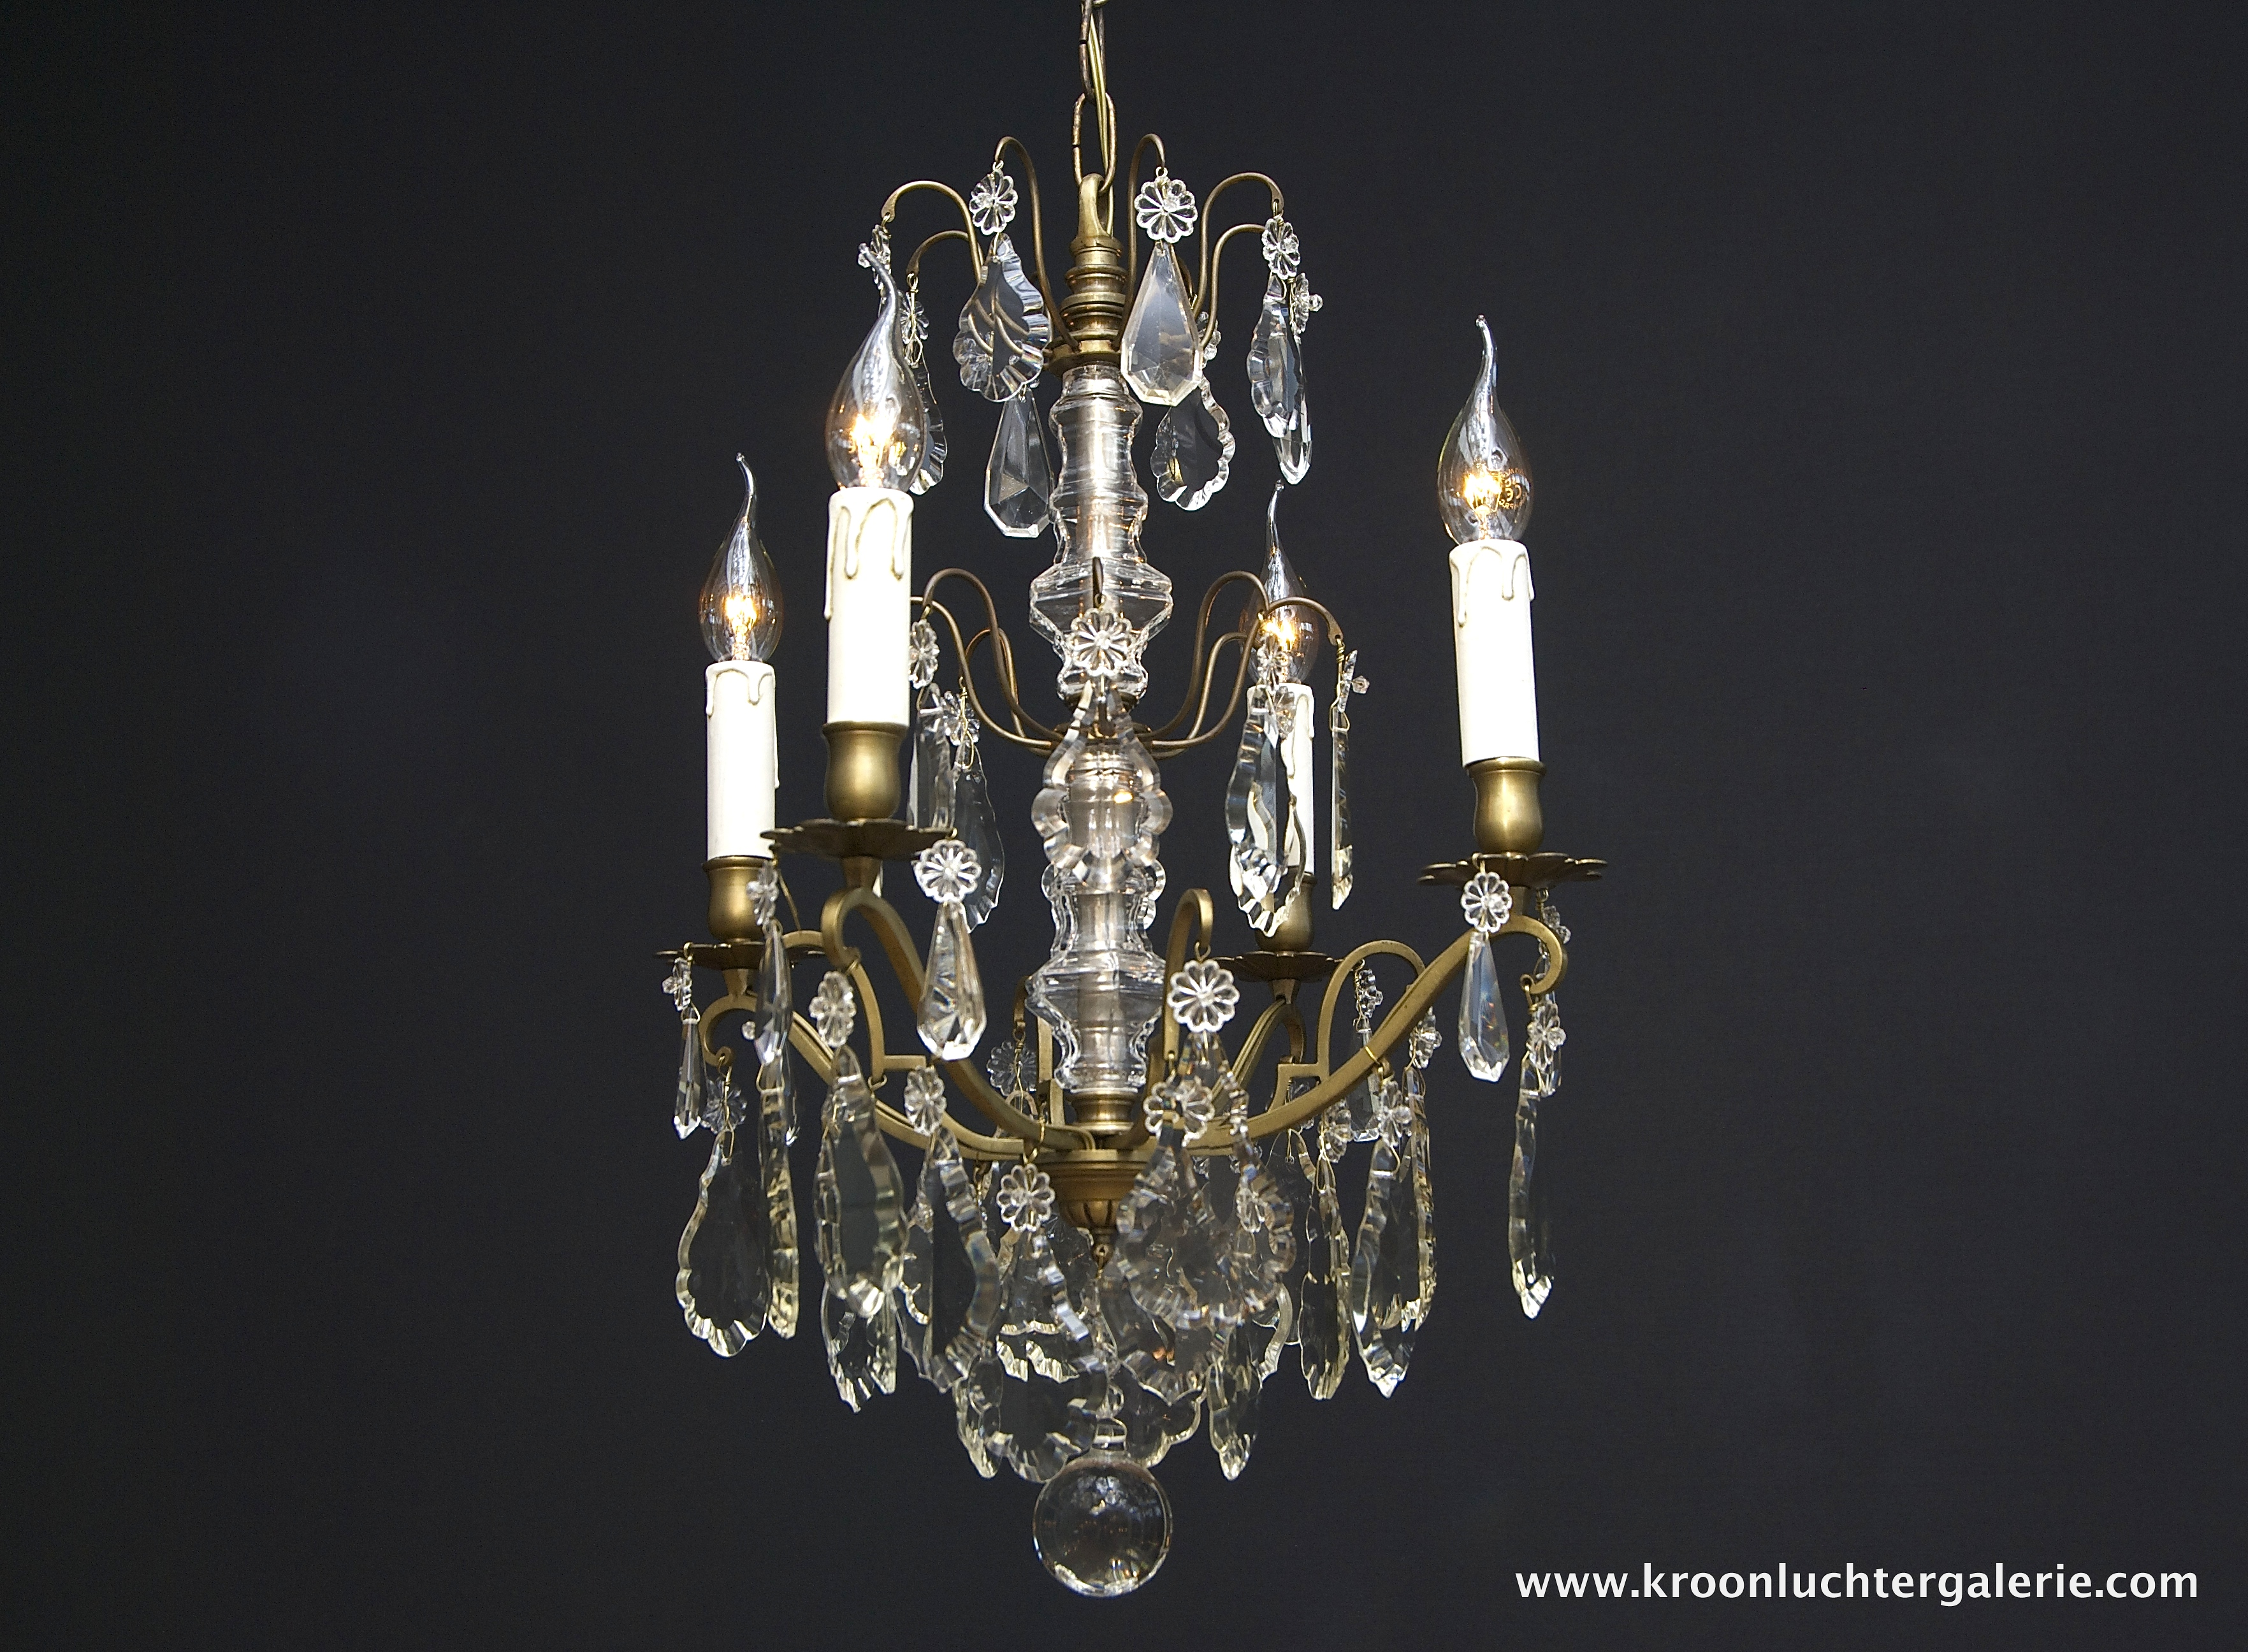 French chandelier with 4 light